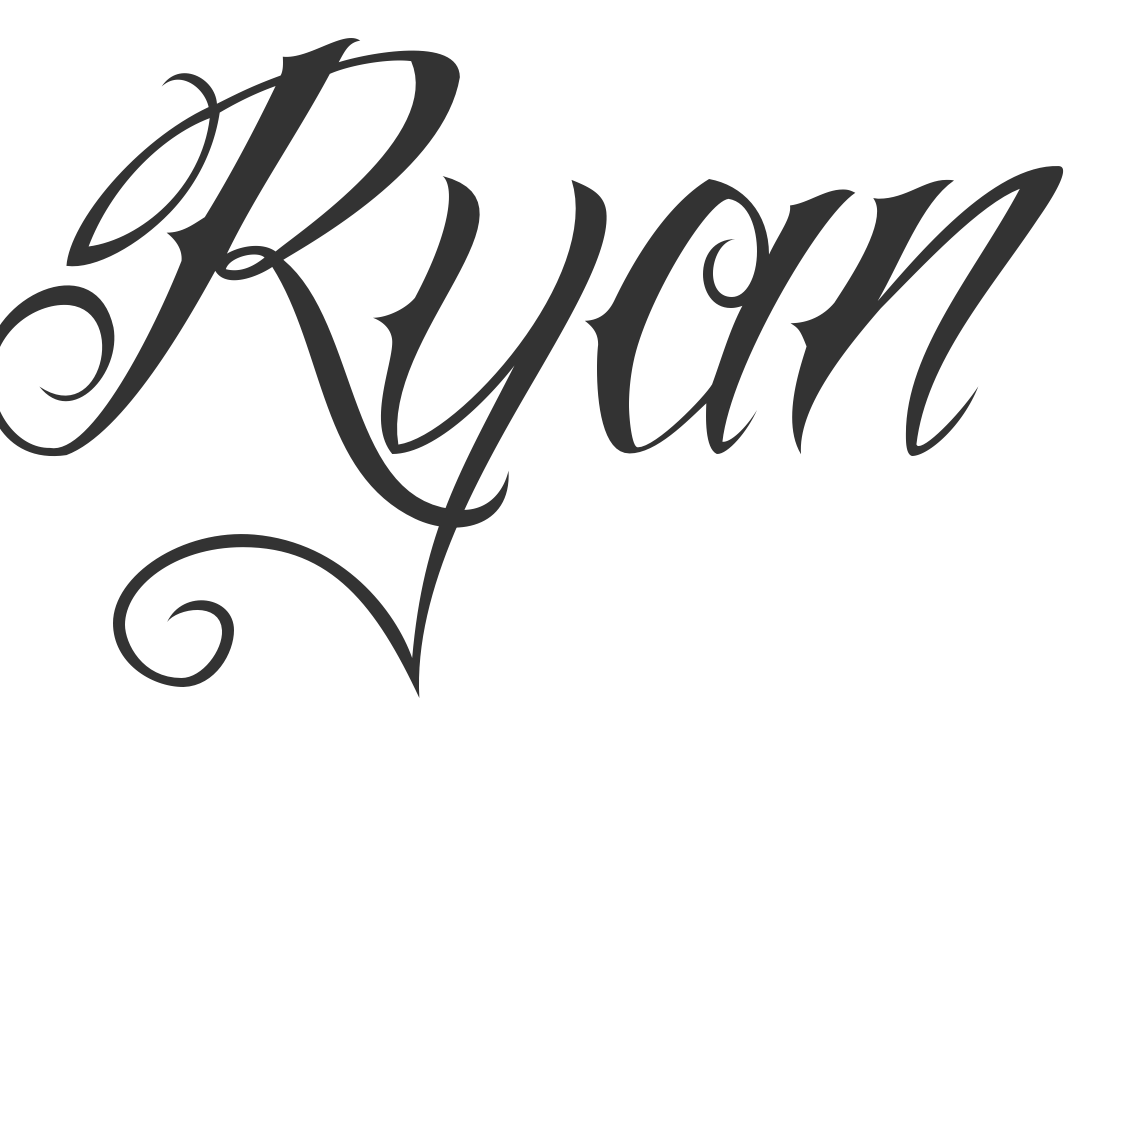 Fonts drawing chicano. Cursive name tattoos ryan